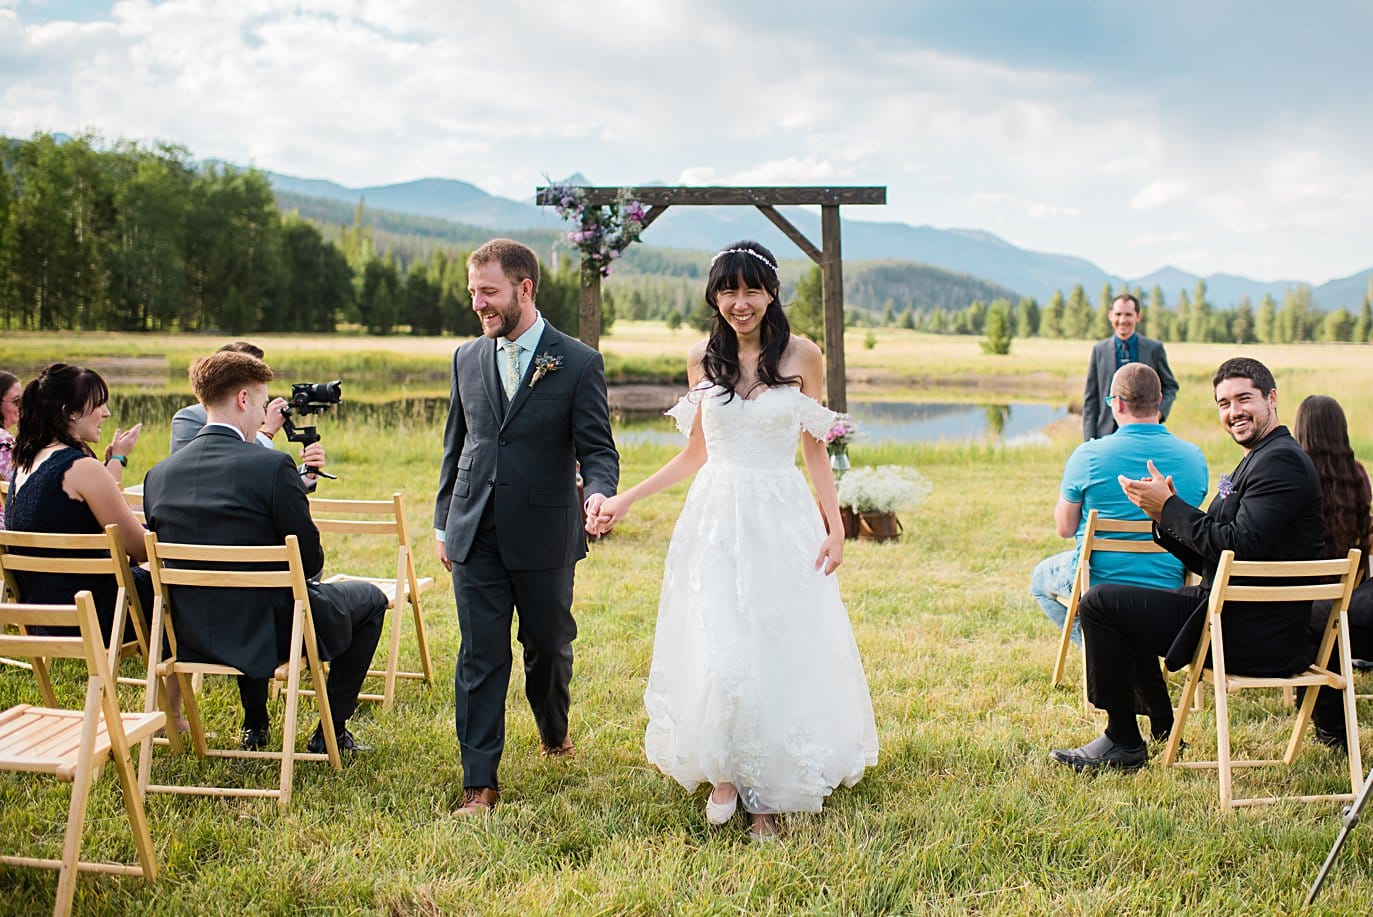 bride and groom walk back won aisle after outdoor Colorado ceremony at intimate Grand Lake wedding by Estes Park wedding photographer Jennie Crate